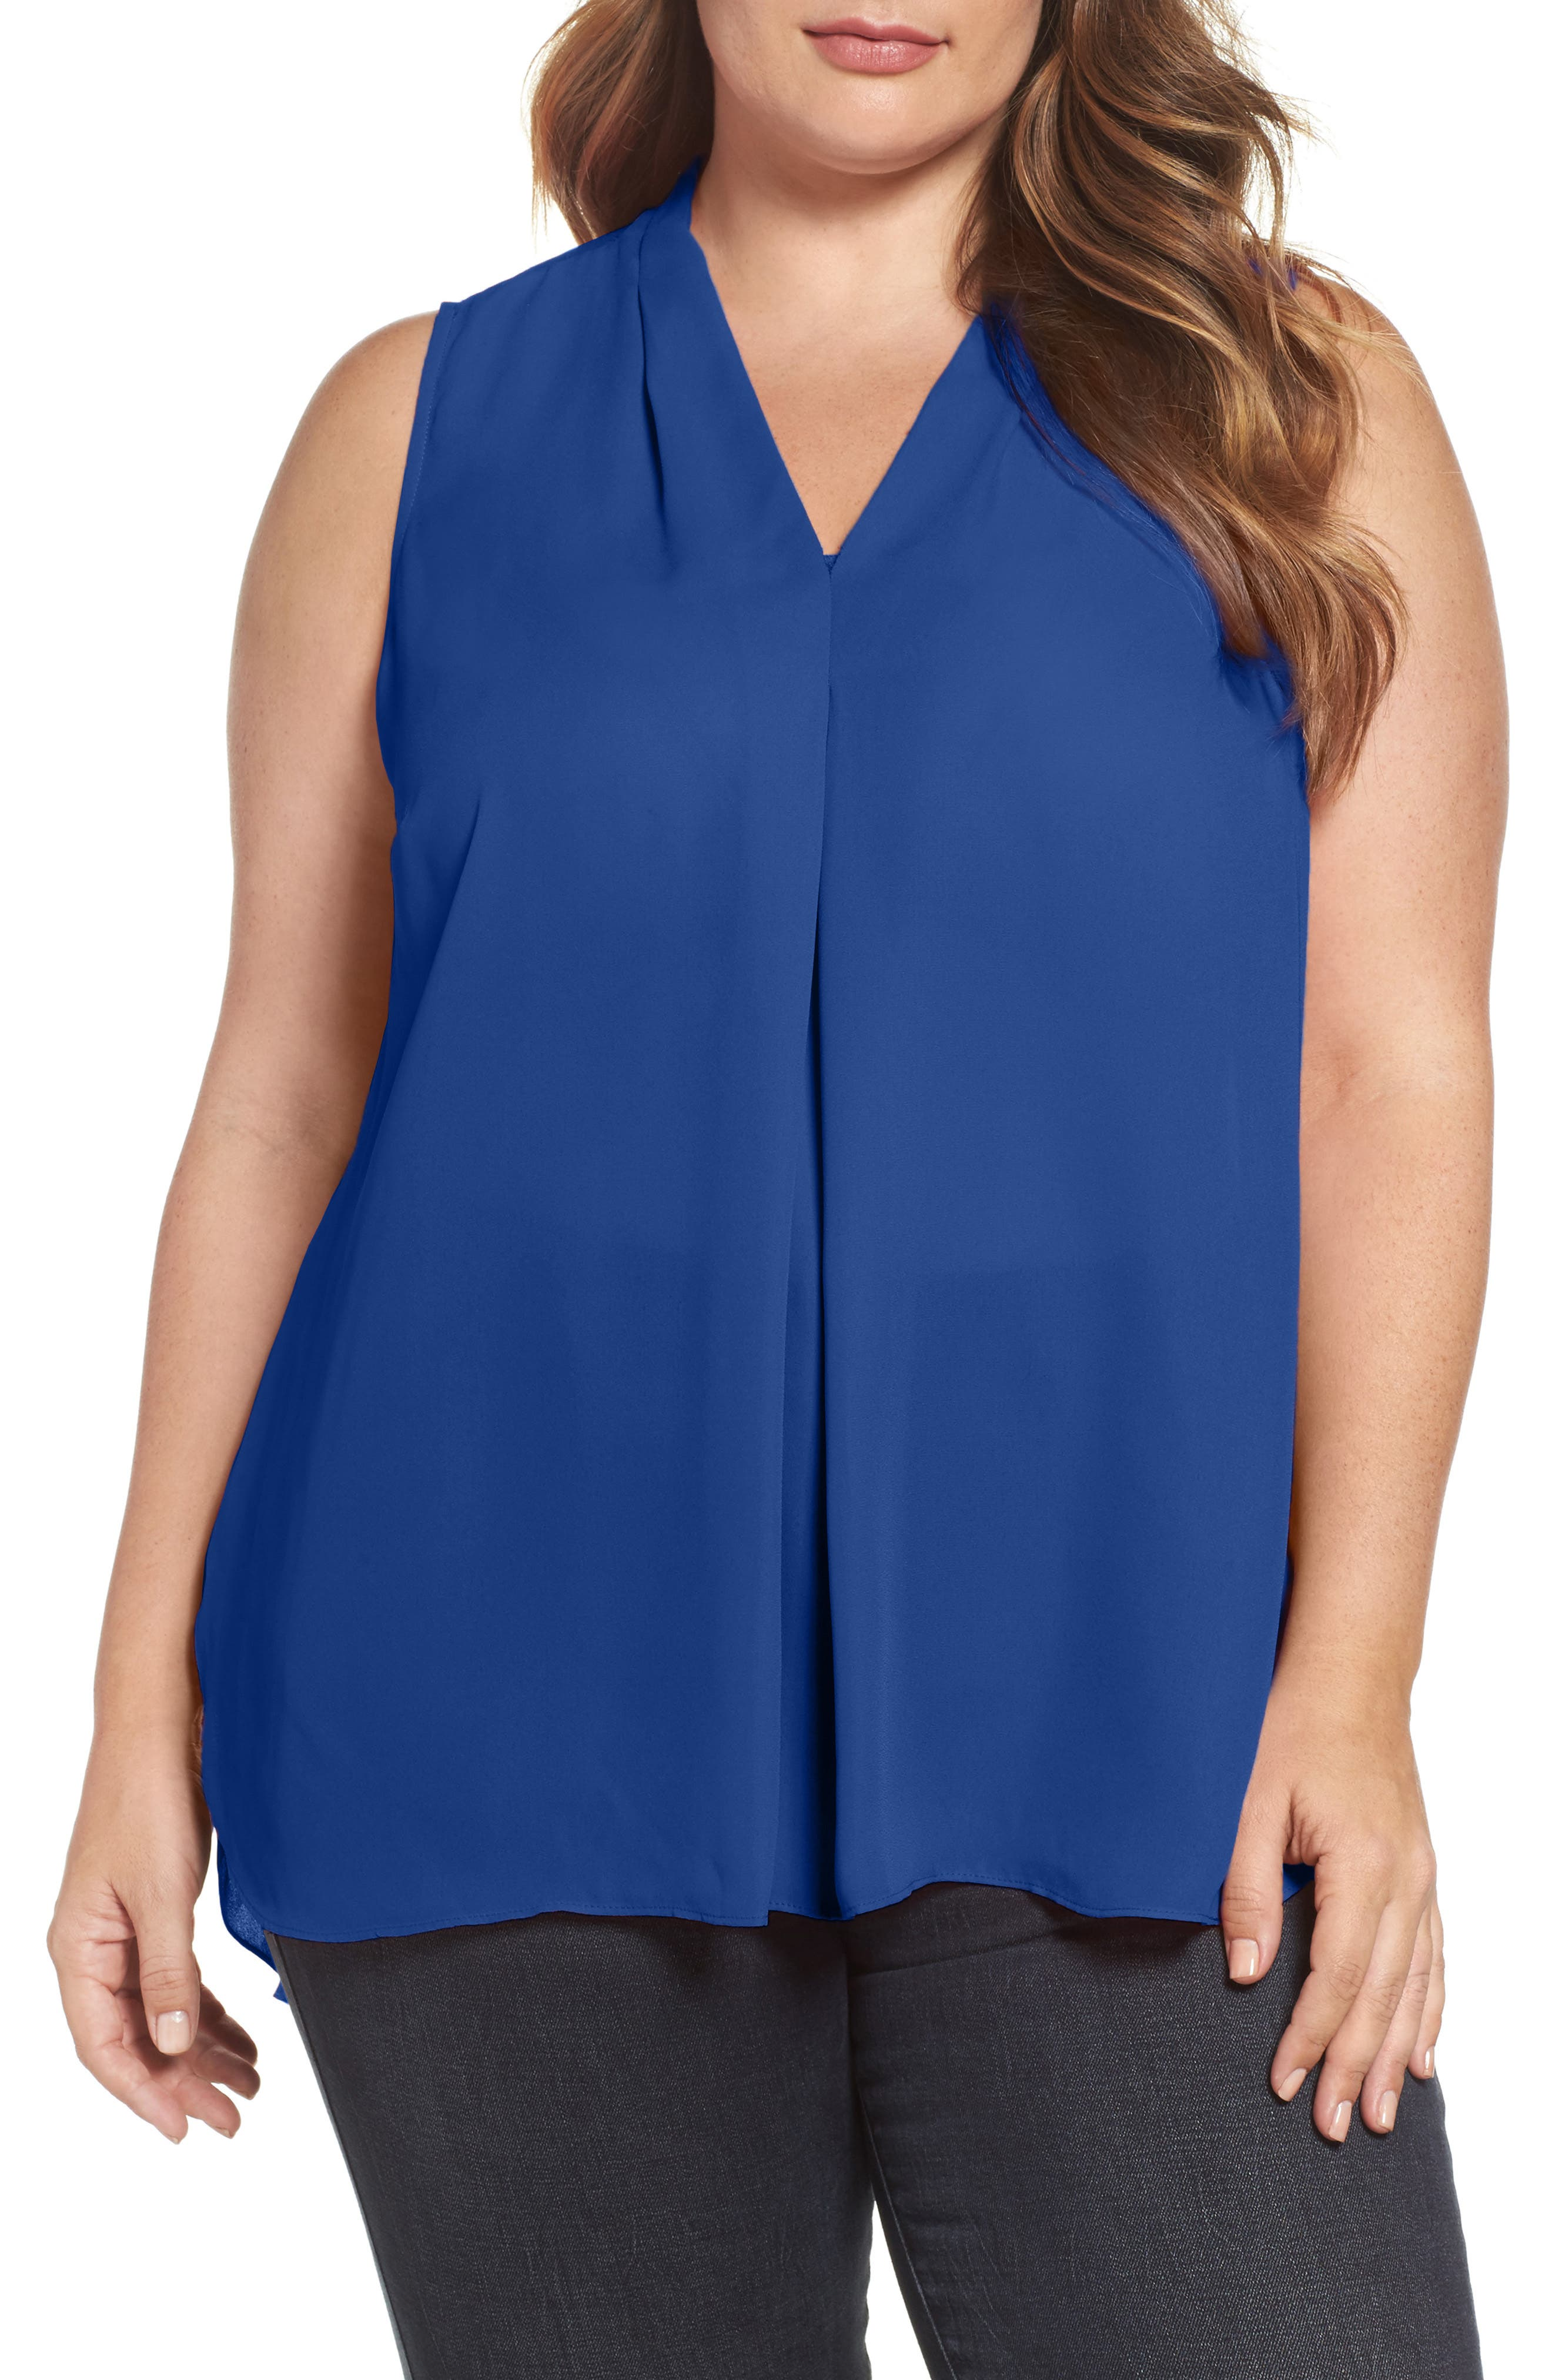 Vince Camuto Sleeveless Inverted Pleat Top (Plus Size)